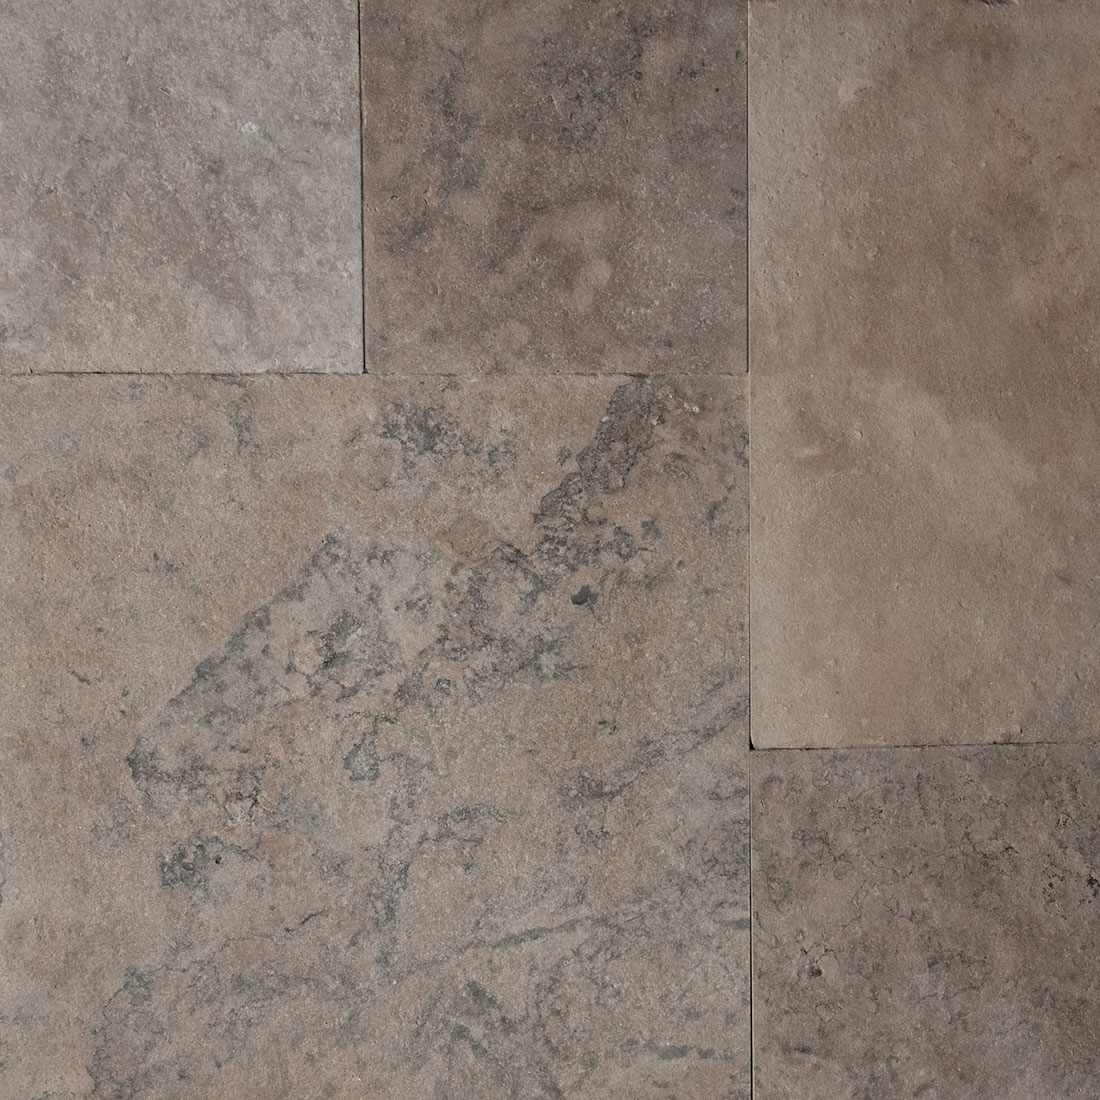 Wiarton Buff flamed square cut flagstone paver swatch